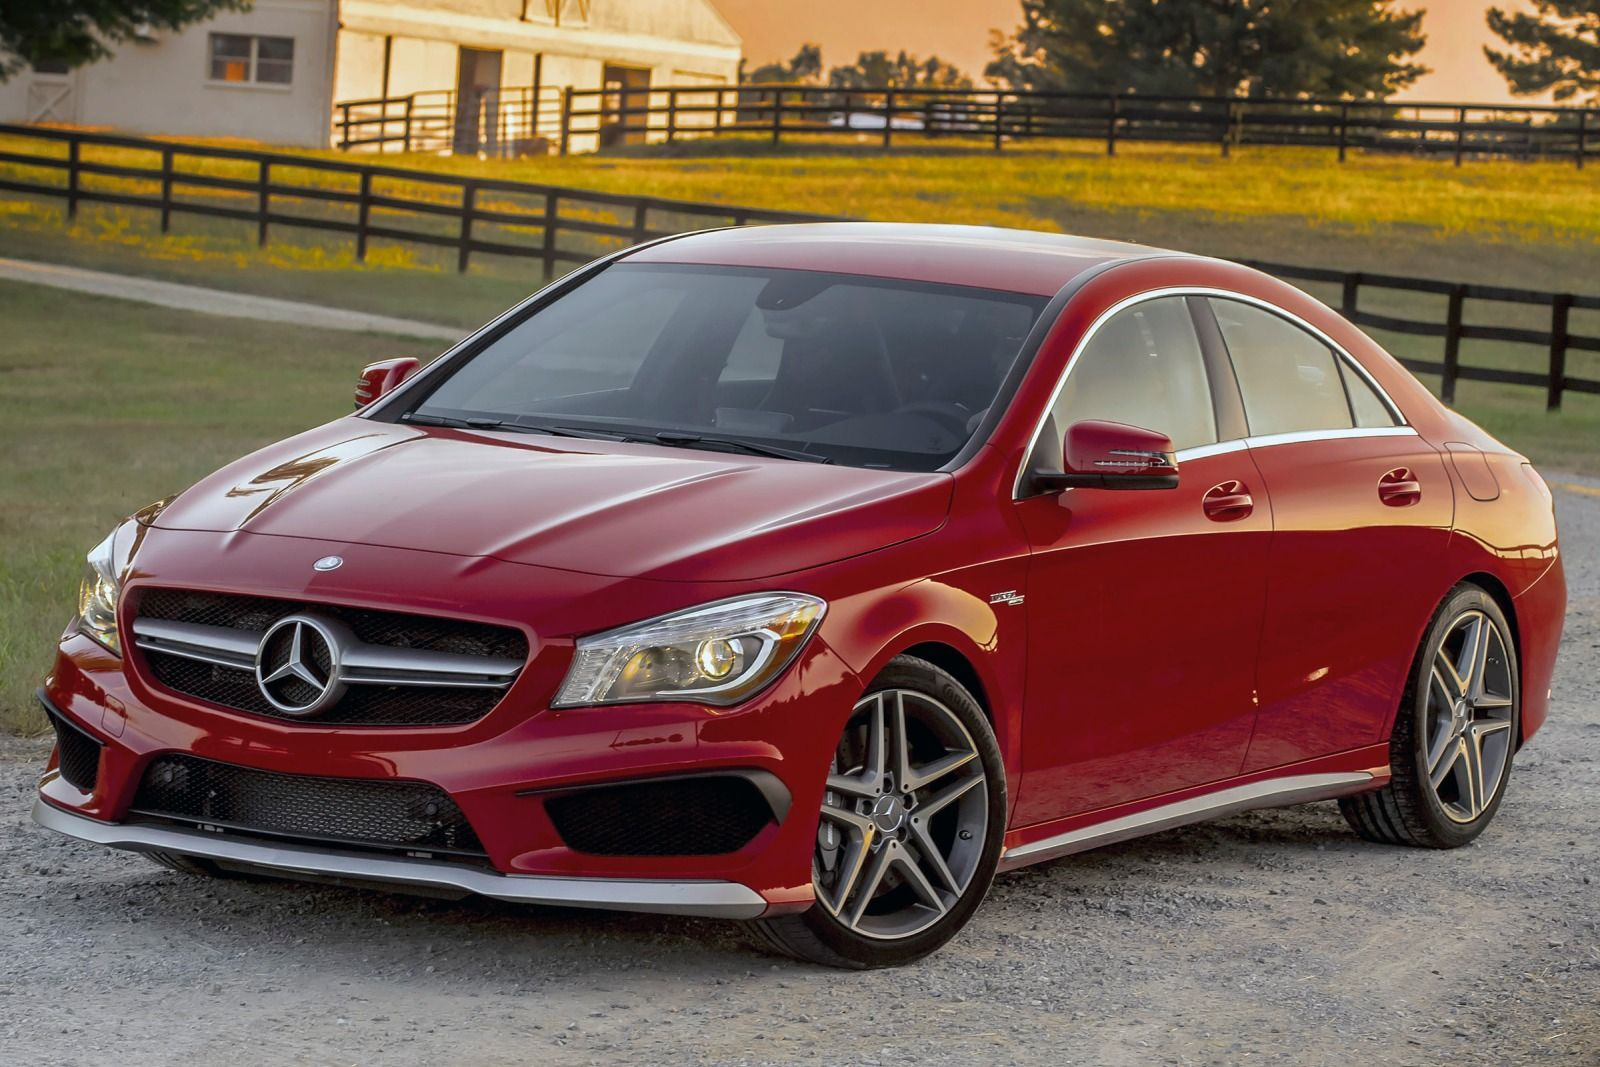 2015 mercedes benz cla class 10 widescreen car wallpaper. Cars Review. Best American Auto & Cars Review